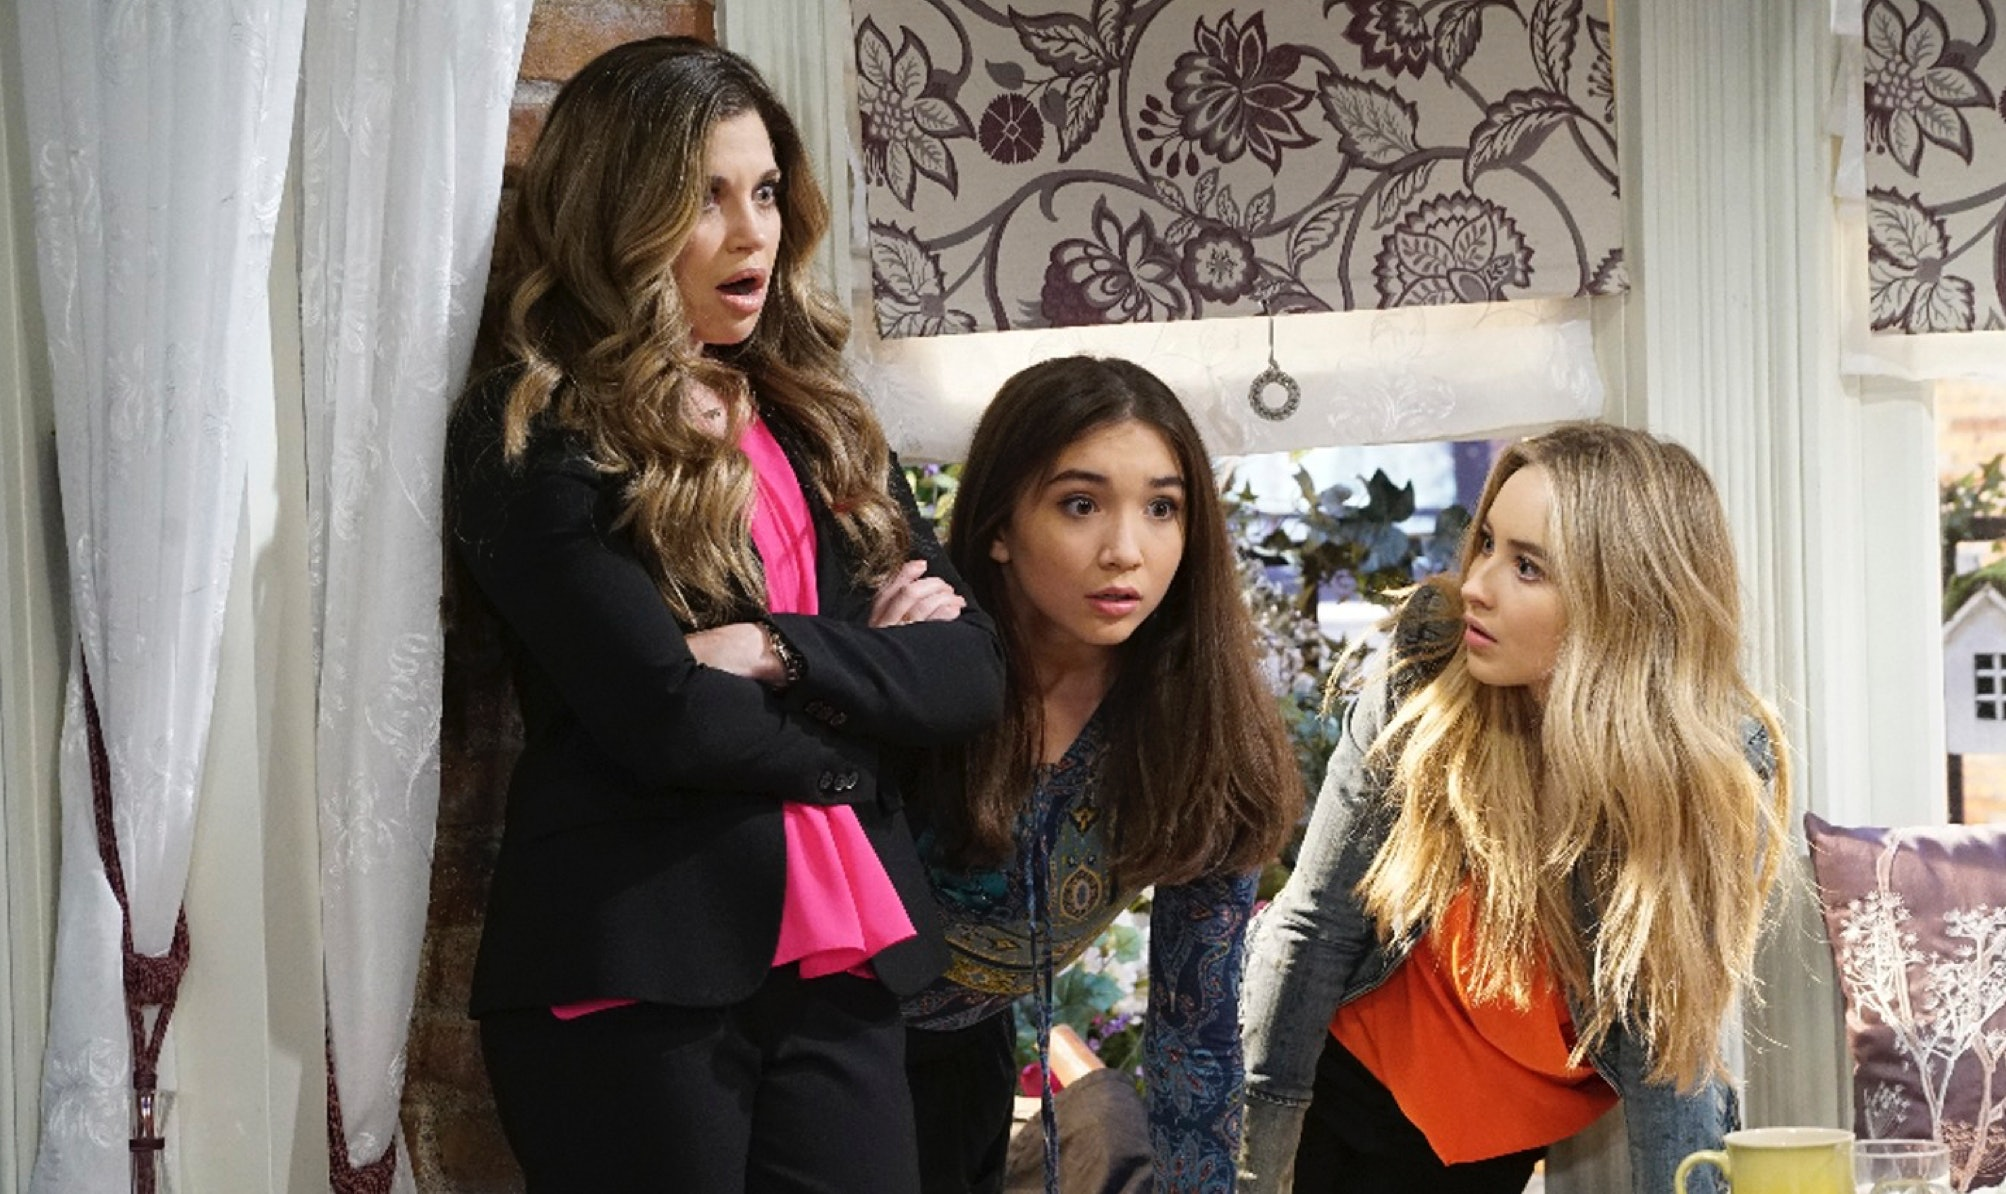 Netflix Passes On Picking Up 'Girl Meets World' For More Seasons